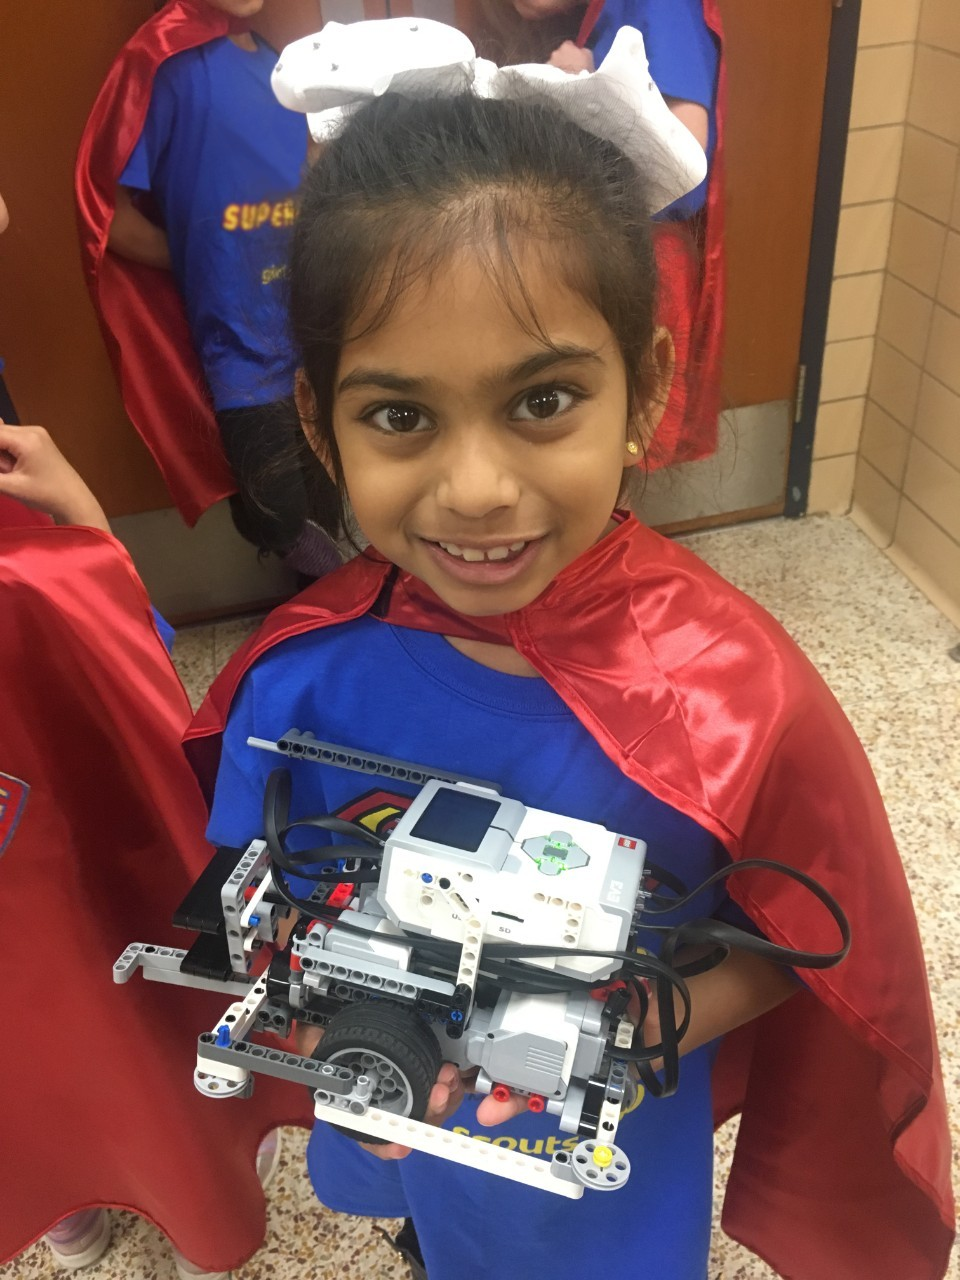 Supergirl Pari proudly holds one of her team's robots.